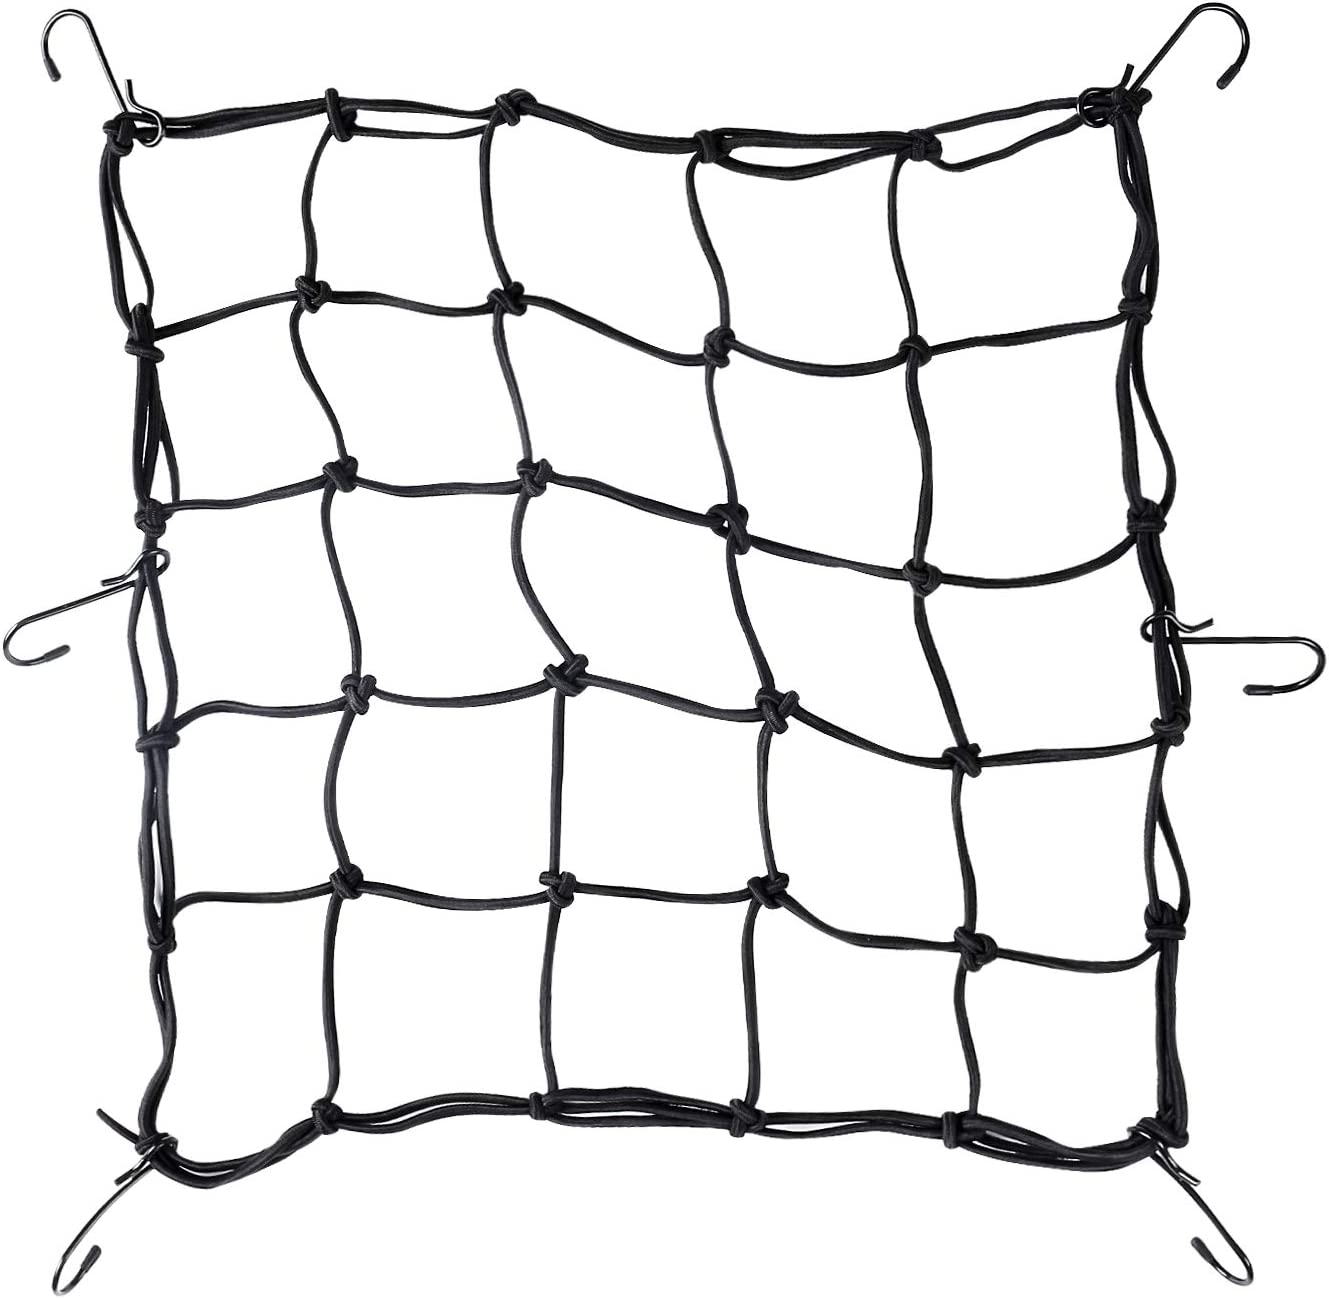 "SunFounder Super Strong Stretch Heavy-Duty 15"" Cargo Net for Motorcycle ATV - Stretches to 45"" with Iron Hooks"